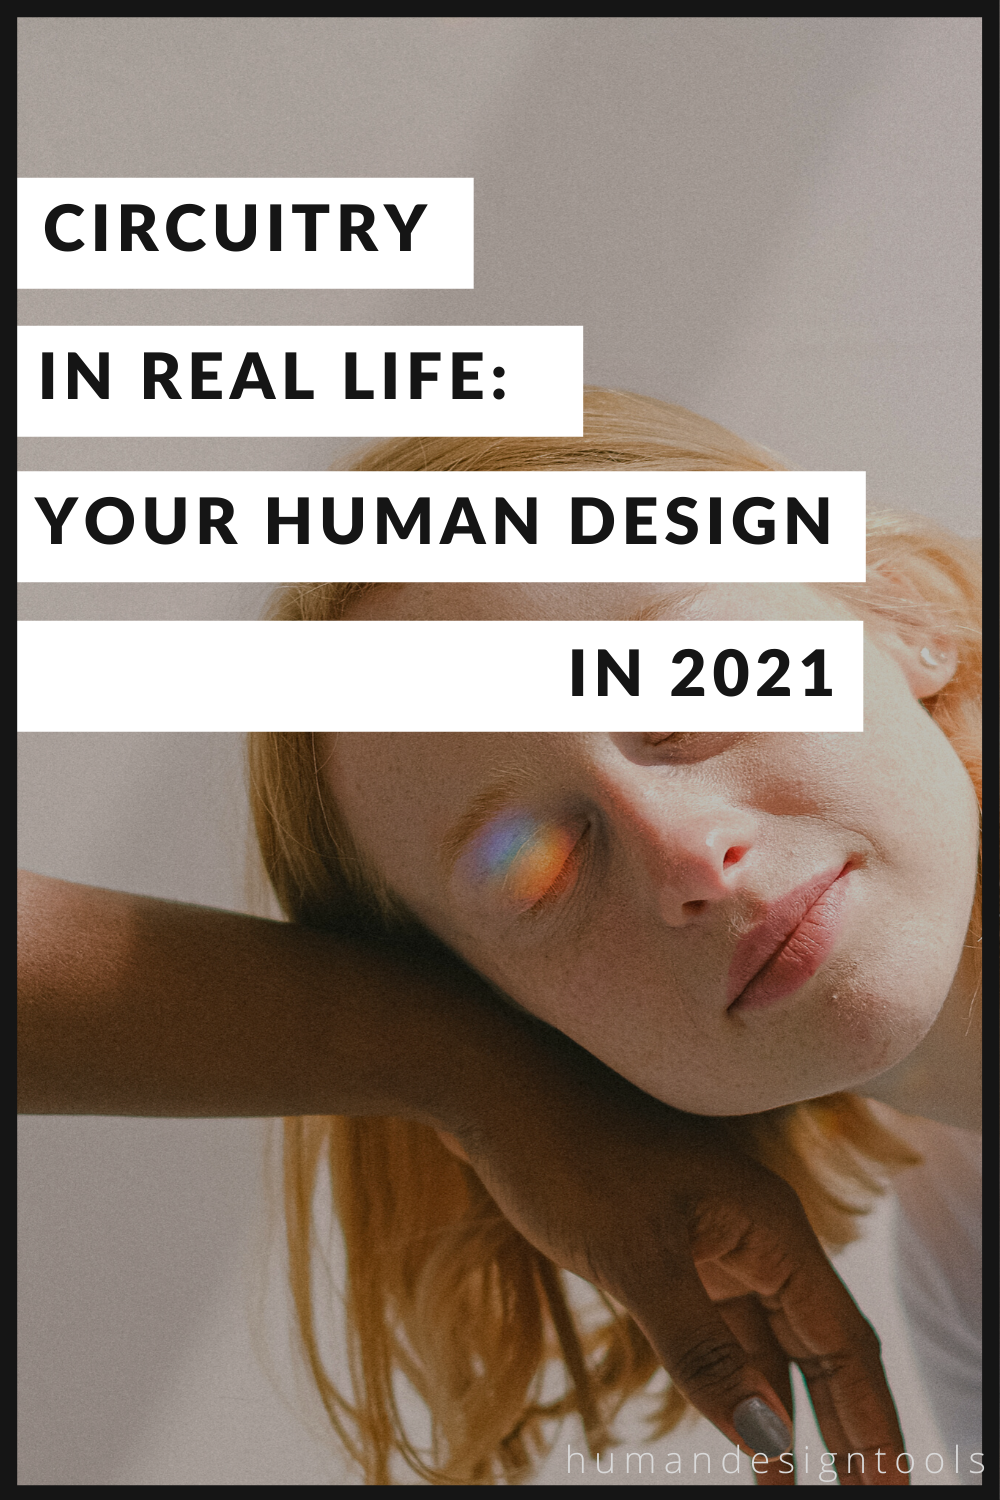 Circuitry in Real Life: Your Human Design in 2021